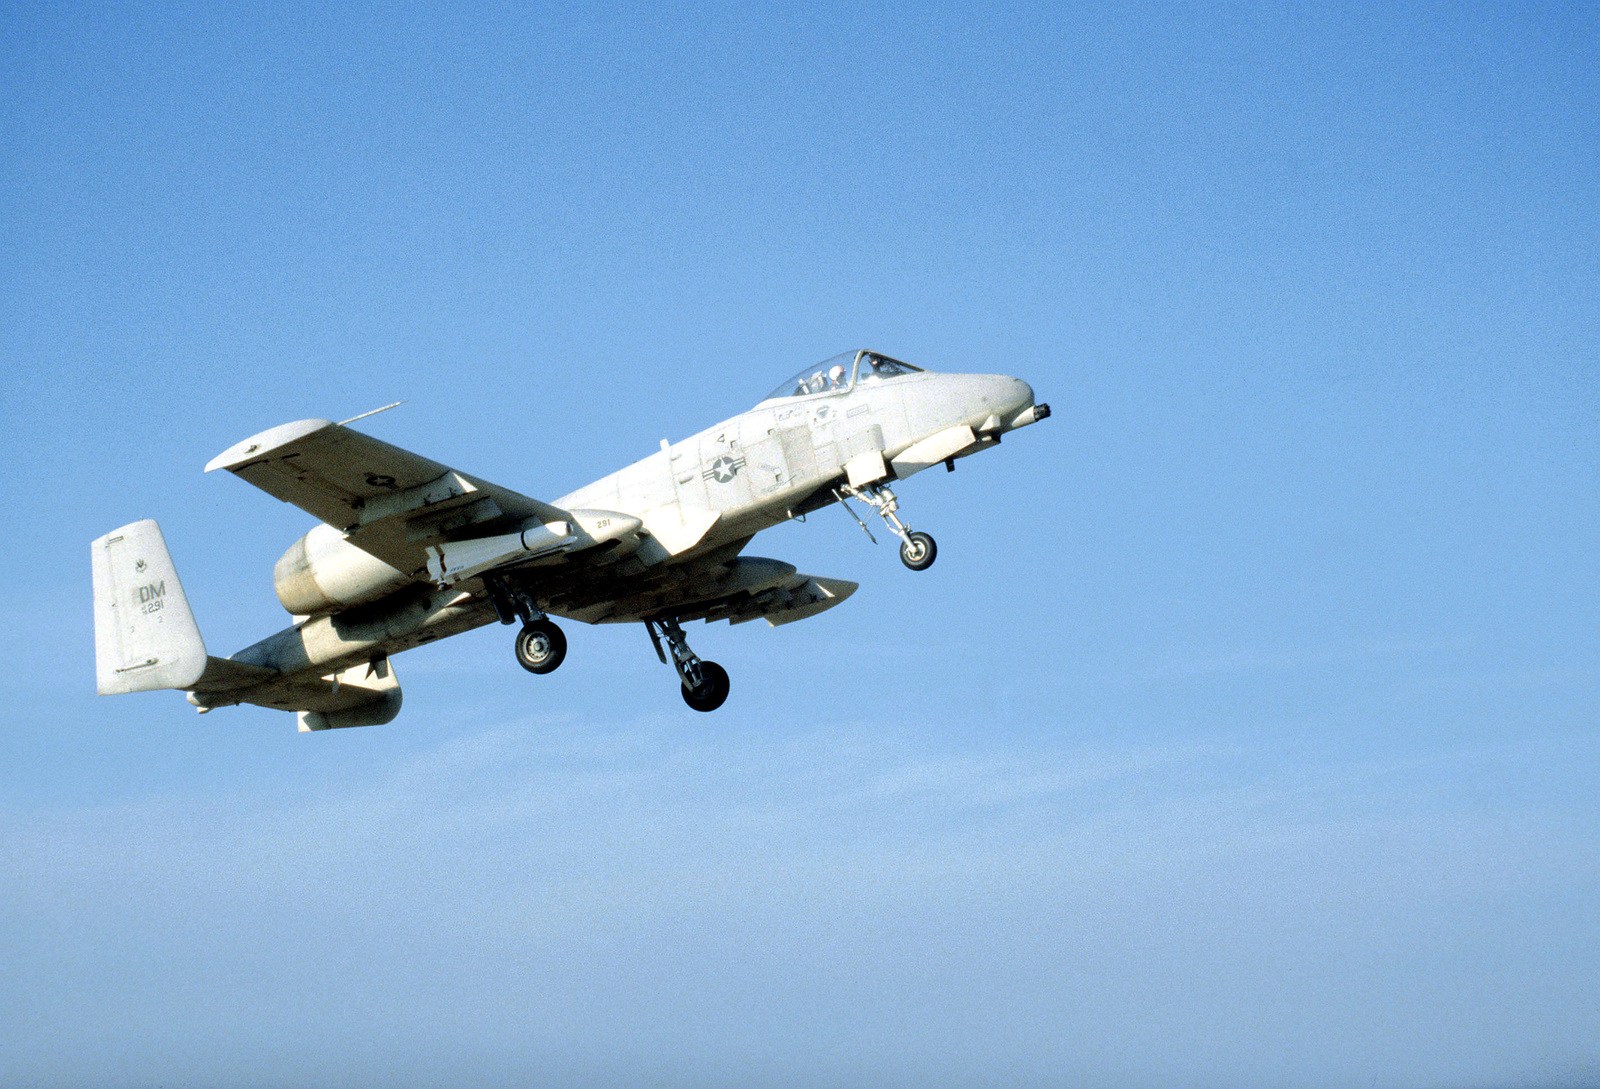 An A-10A Thunderbolt II aircraft takes off on a flight to